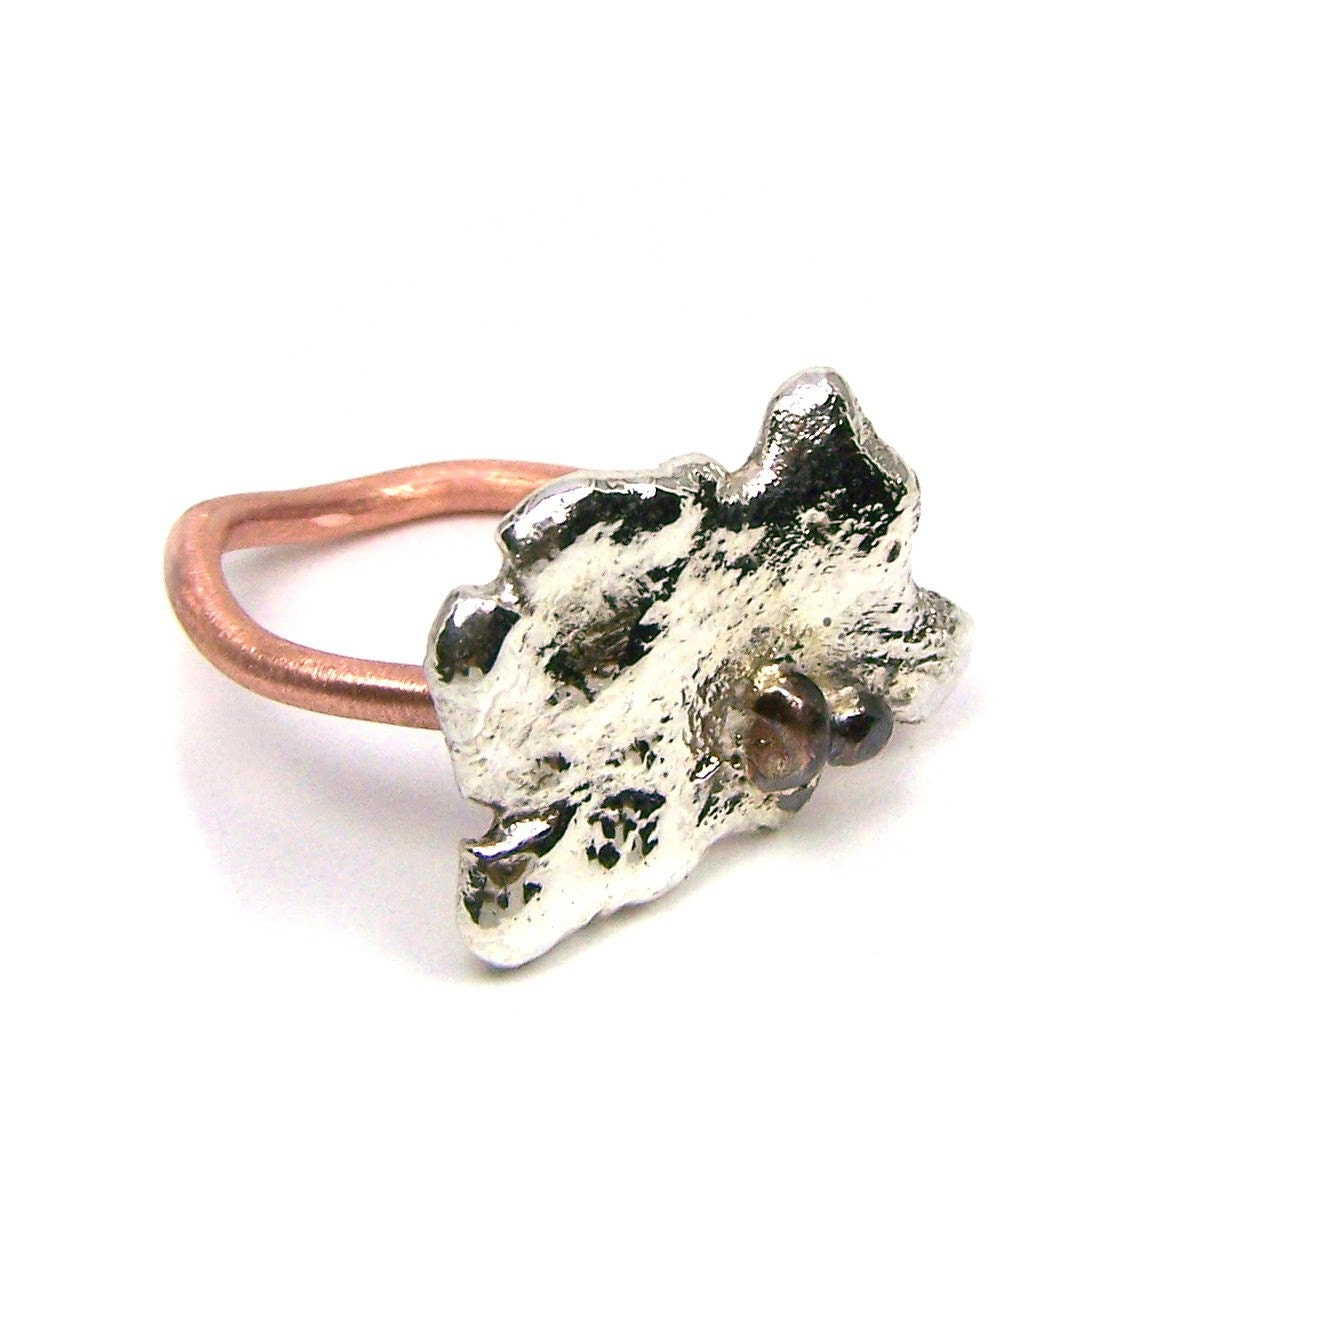 Large Copper Silver Water Puddle Ring - A Pebble in A Puddle